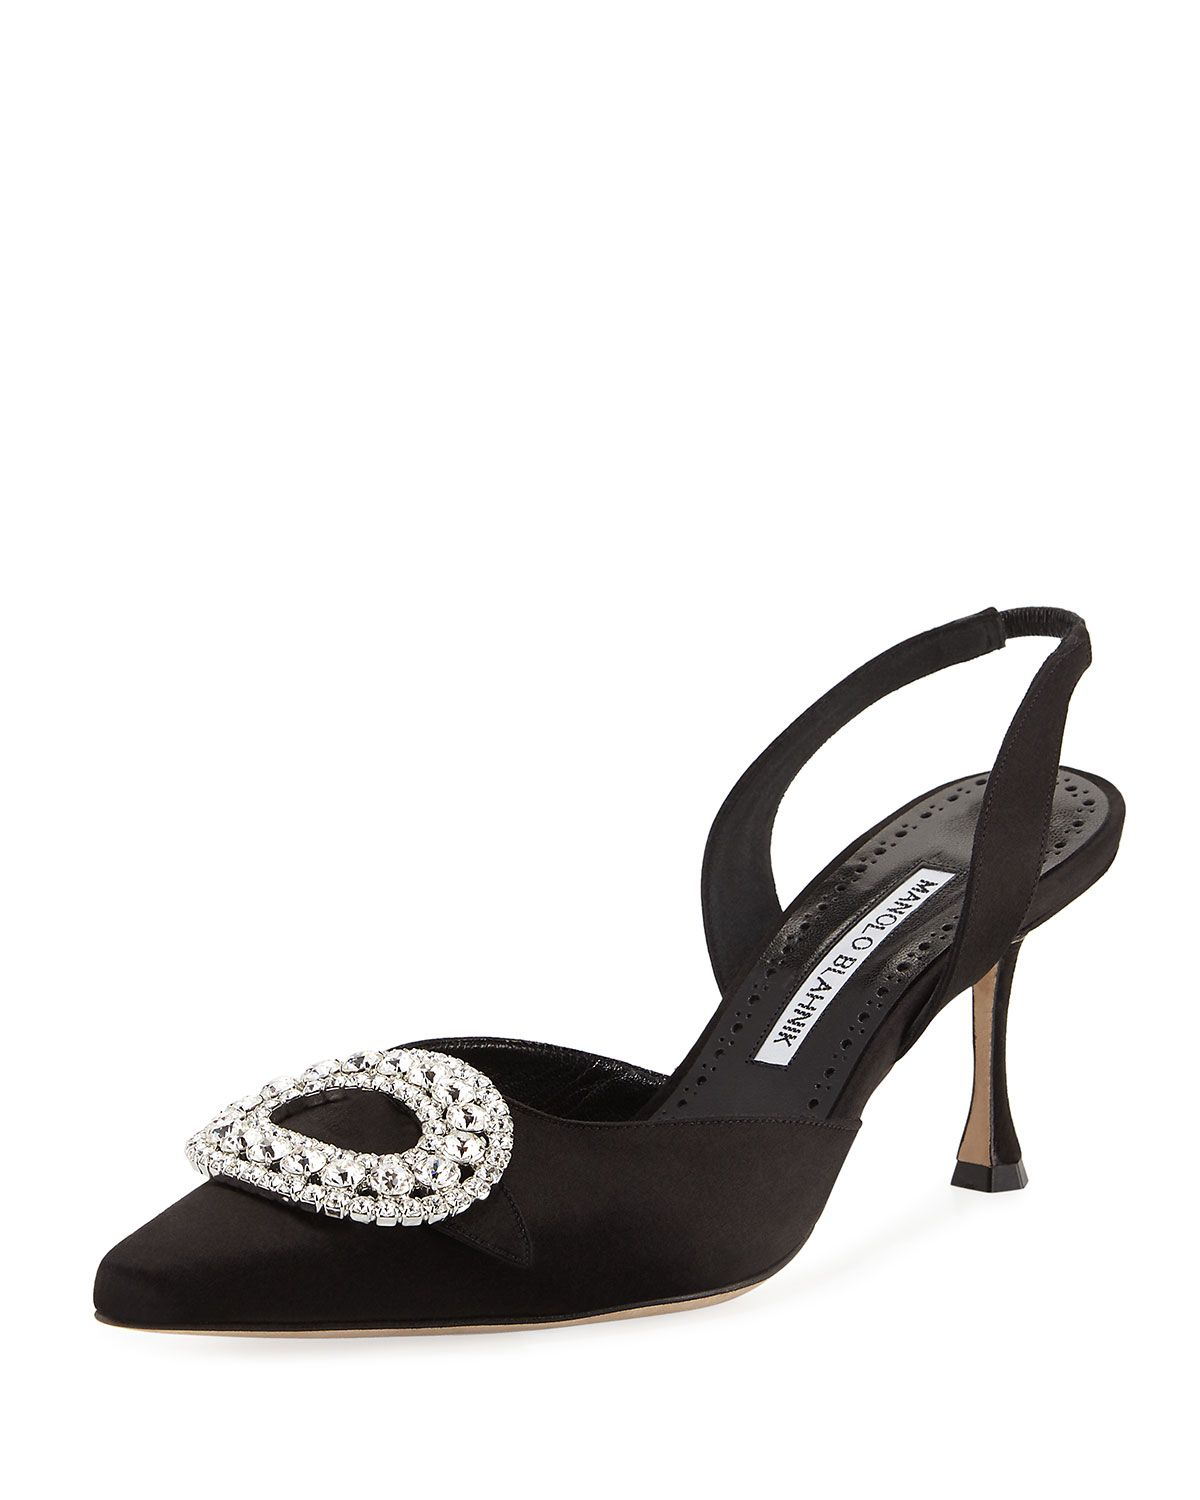 lowest price cheap price amazon footaction Manolo Blahnik Bow-Embellished Slingback Pumps pay with paypal for sale huge surprise sale online iYanr